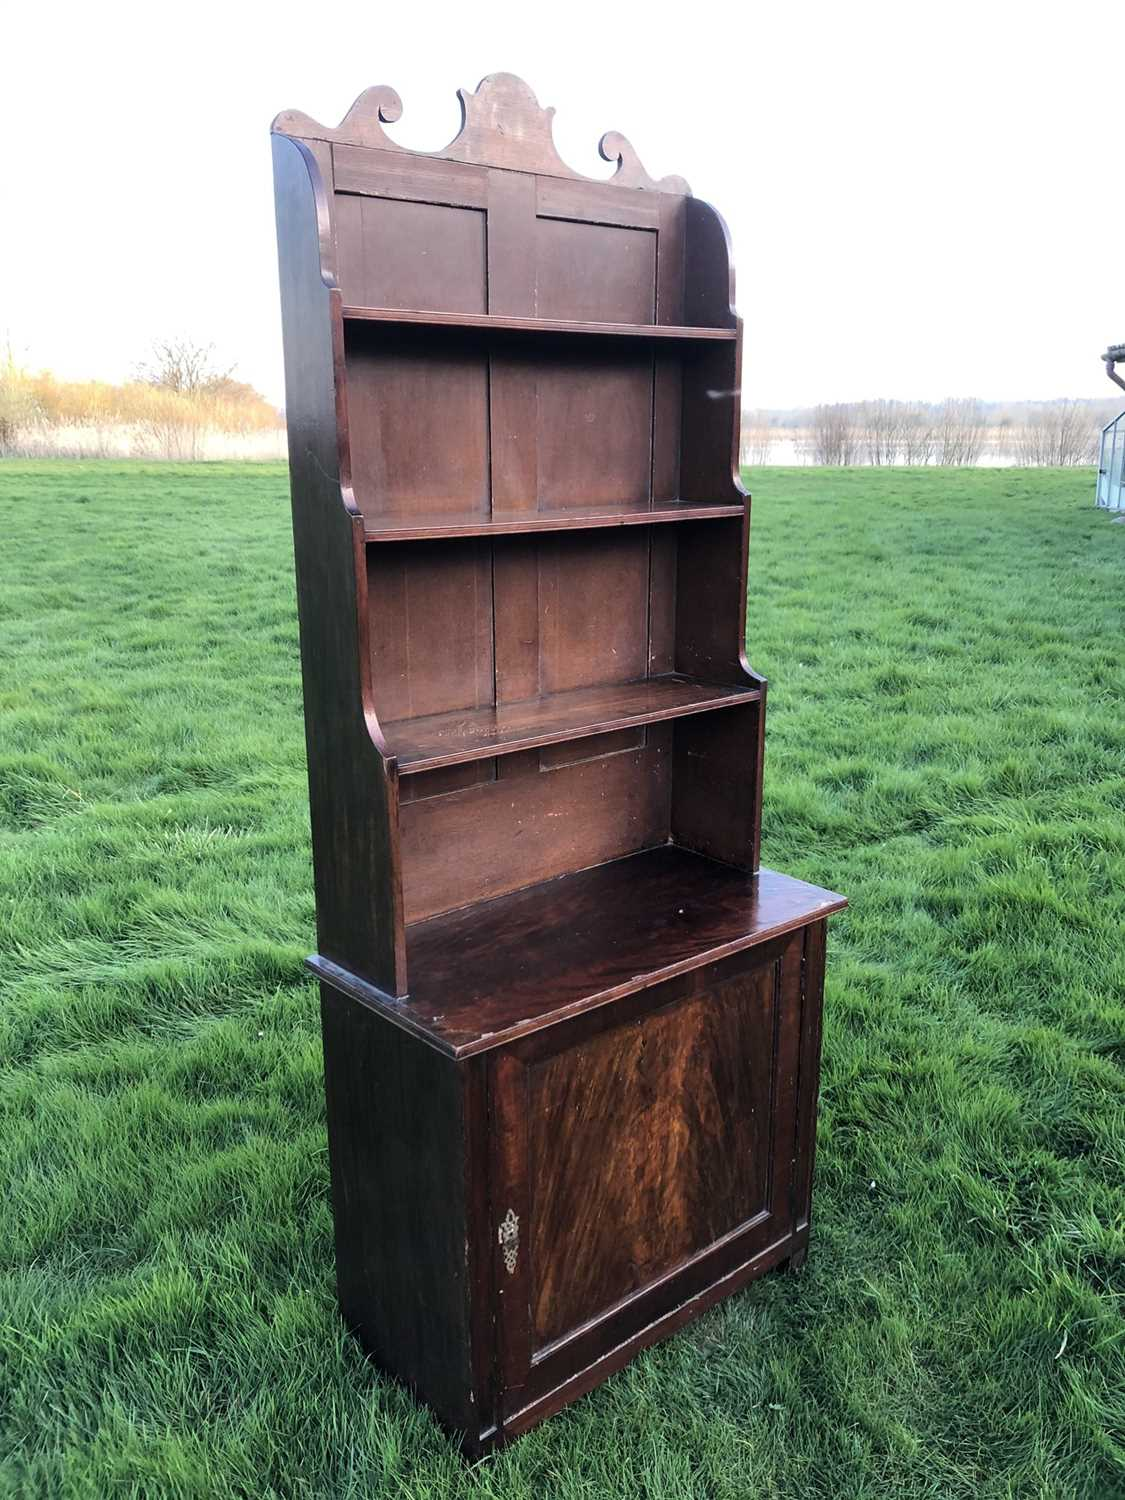 19th century mahogany and grained waterfall bookcase with scrolling top rail and graduated open shel - Image 6 of 7